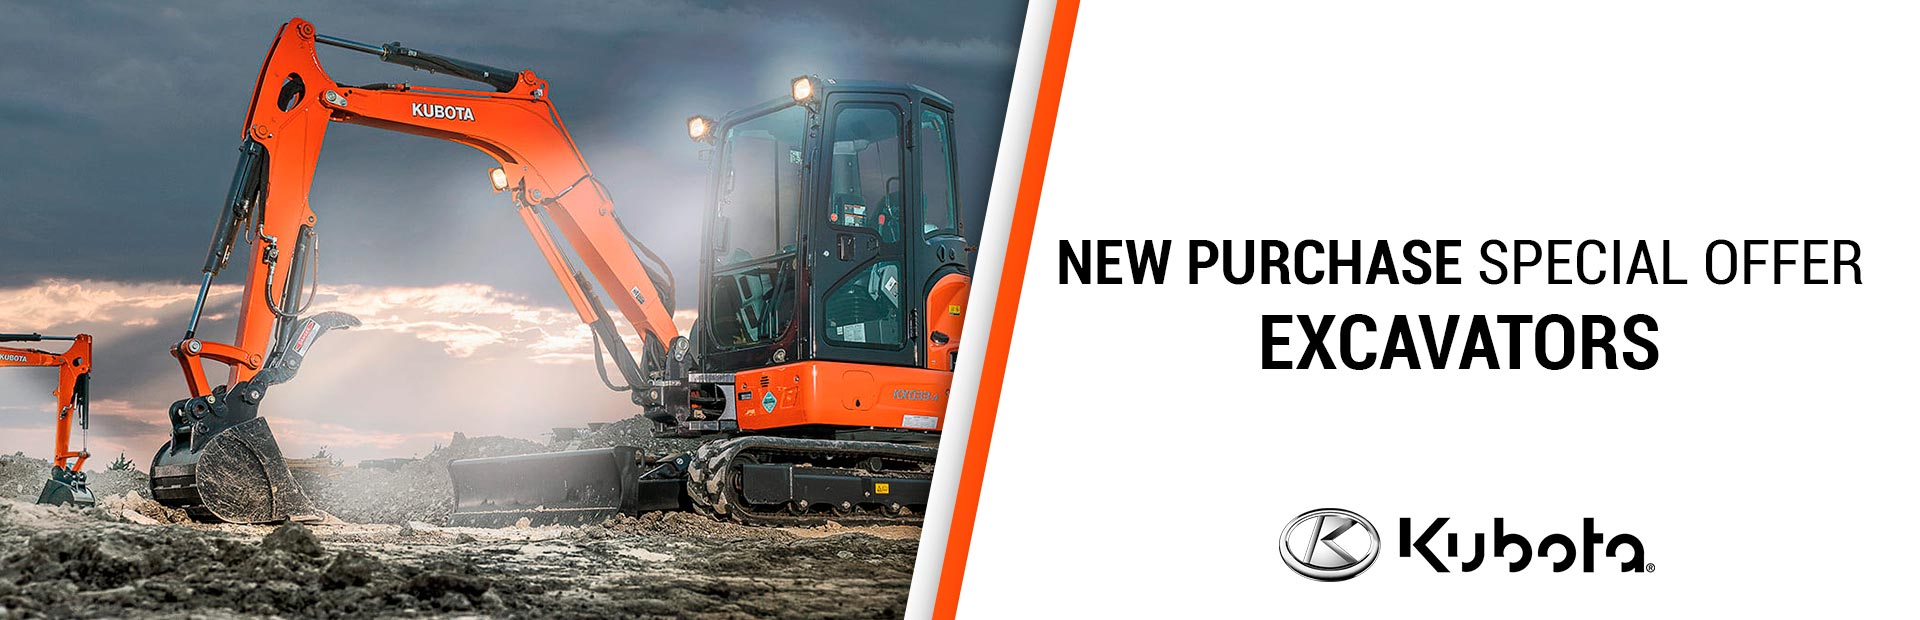 Kubota: New Purchase Special Offers - Excavators